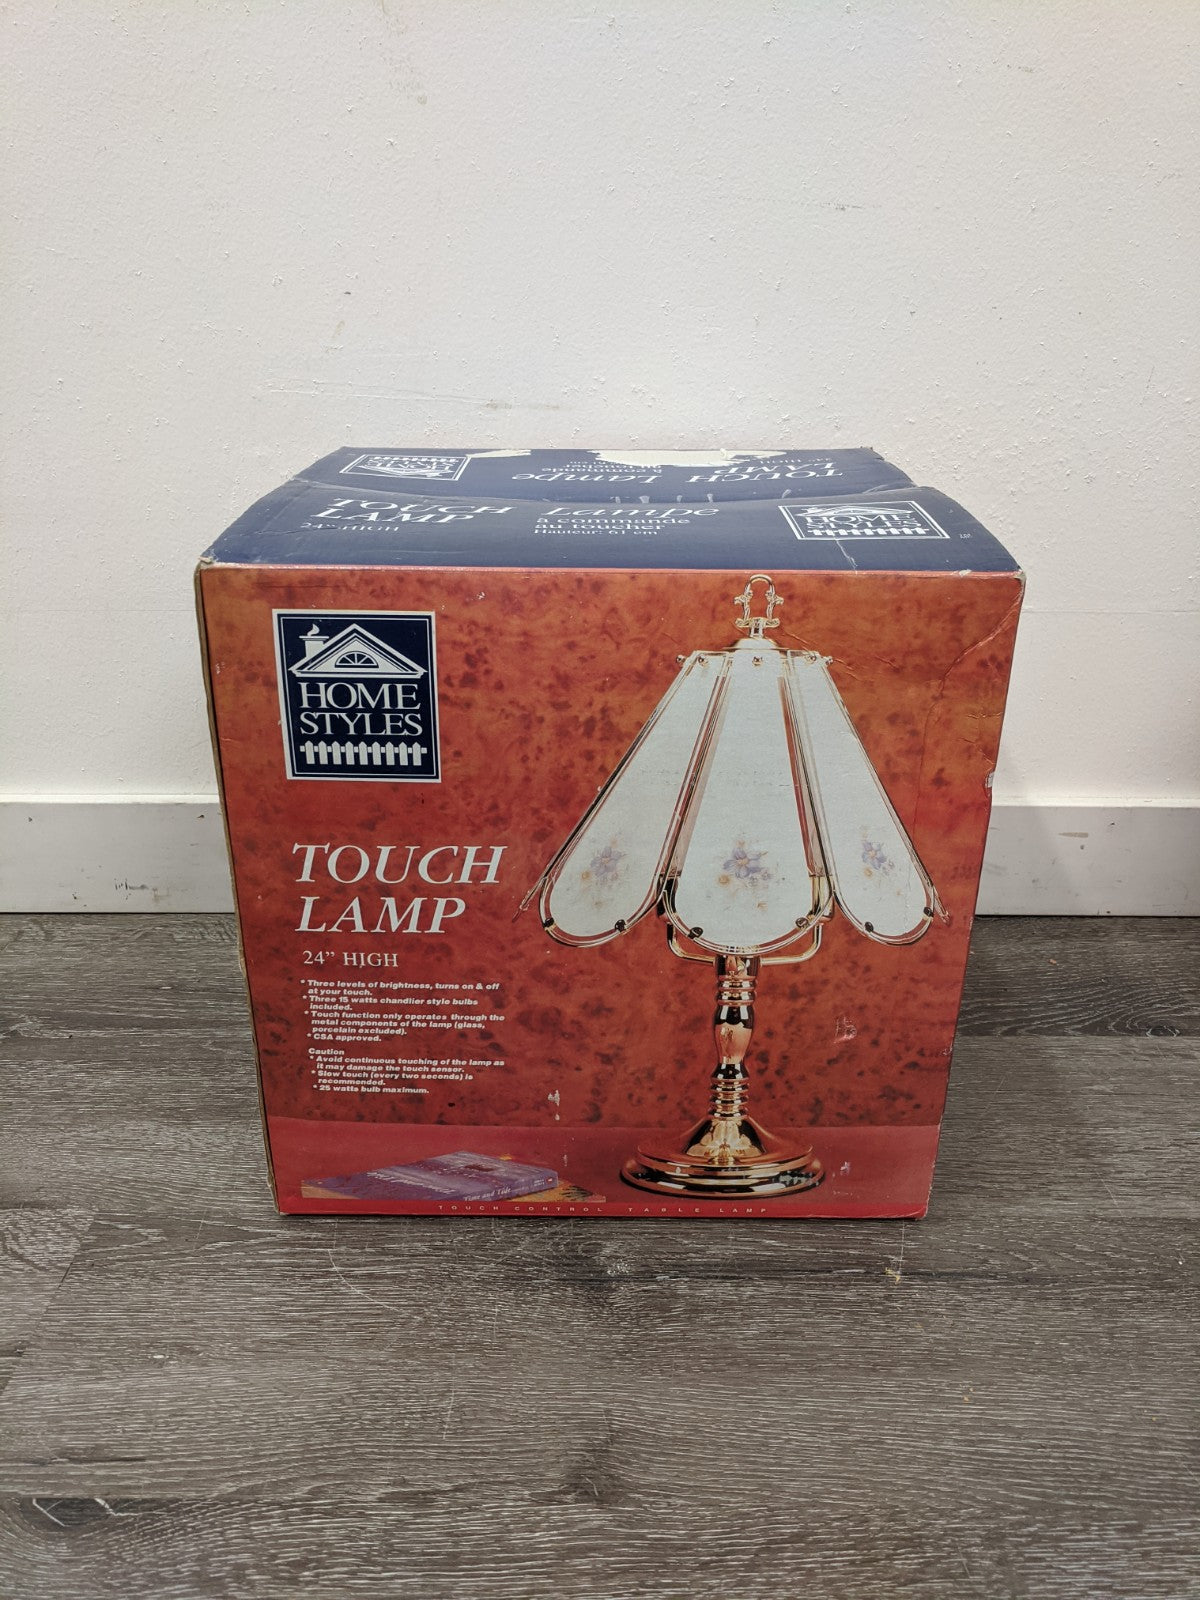 Home Styles Touch Lamp